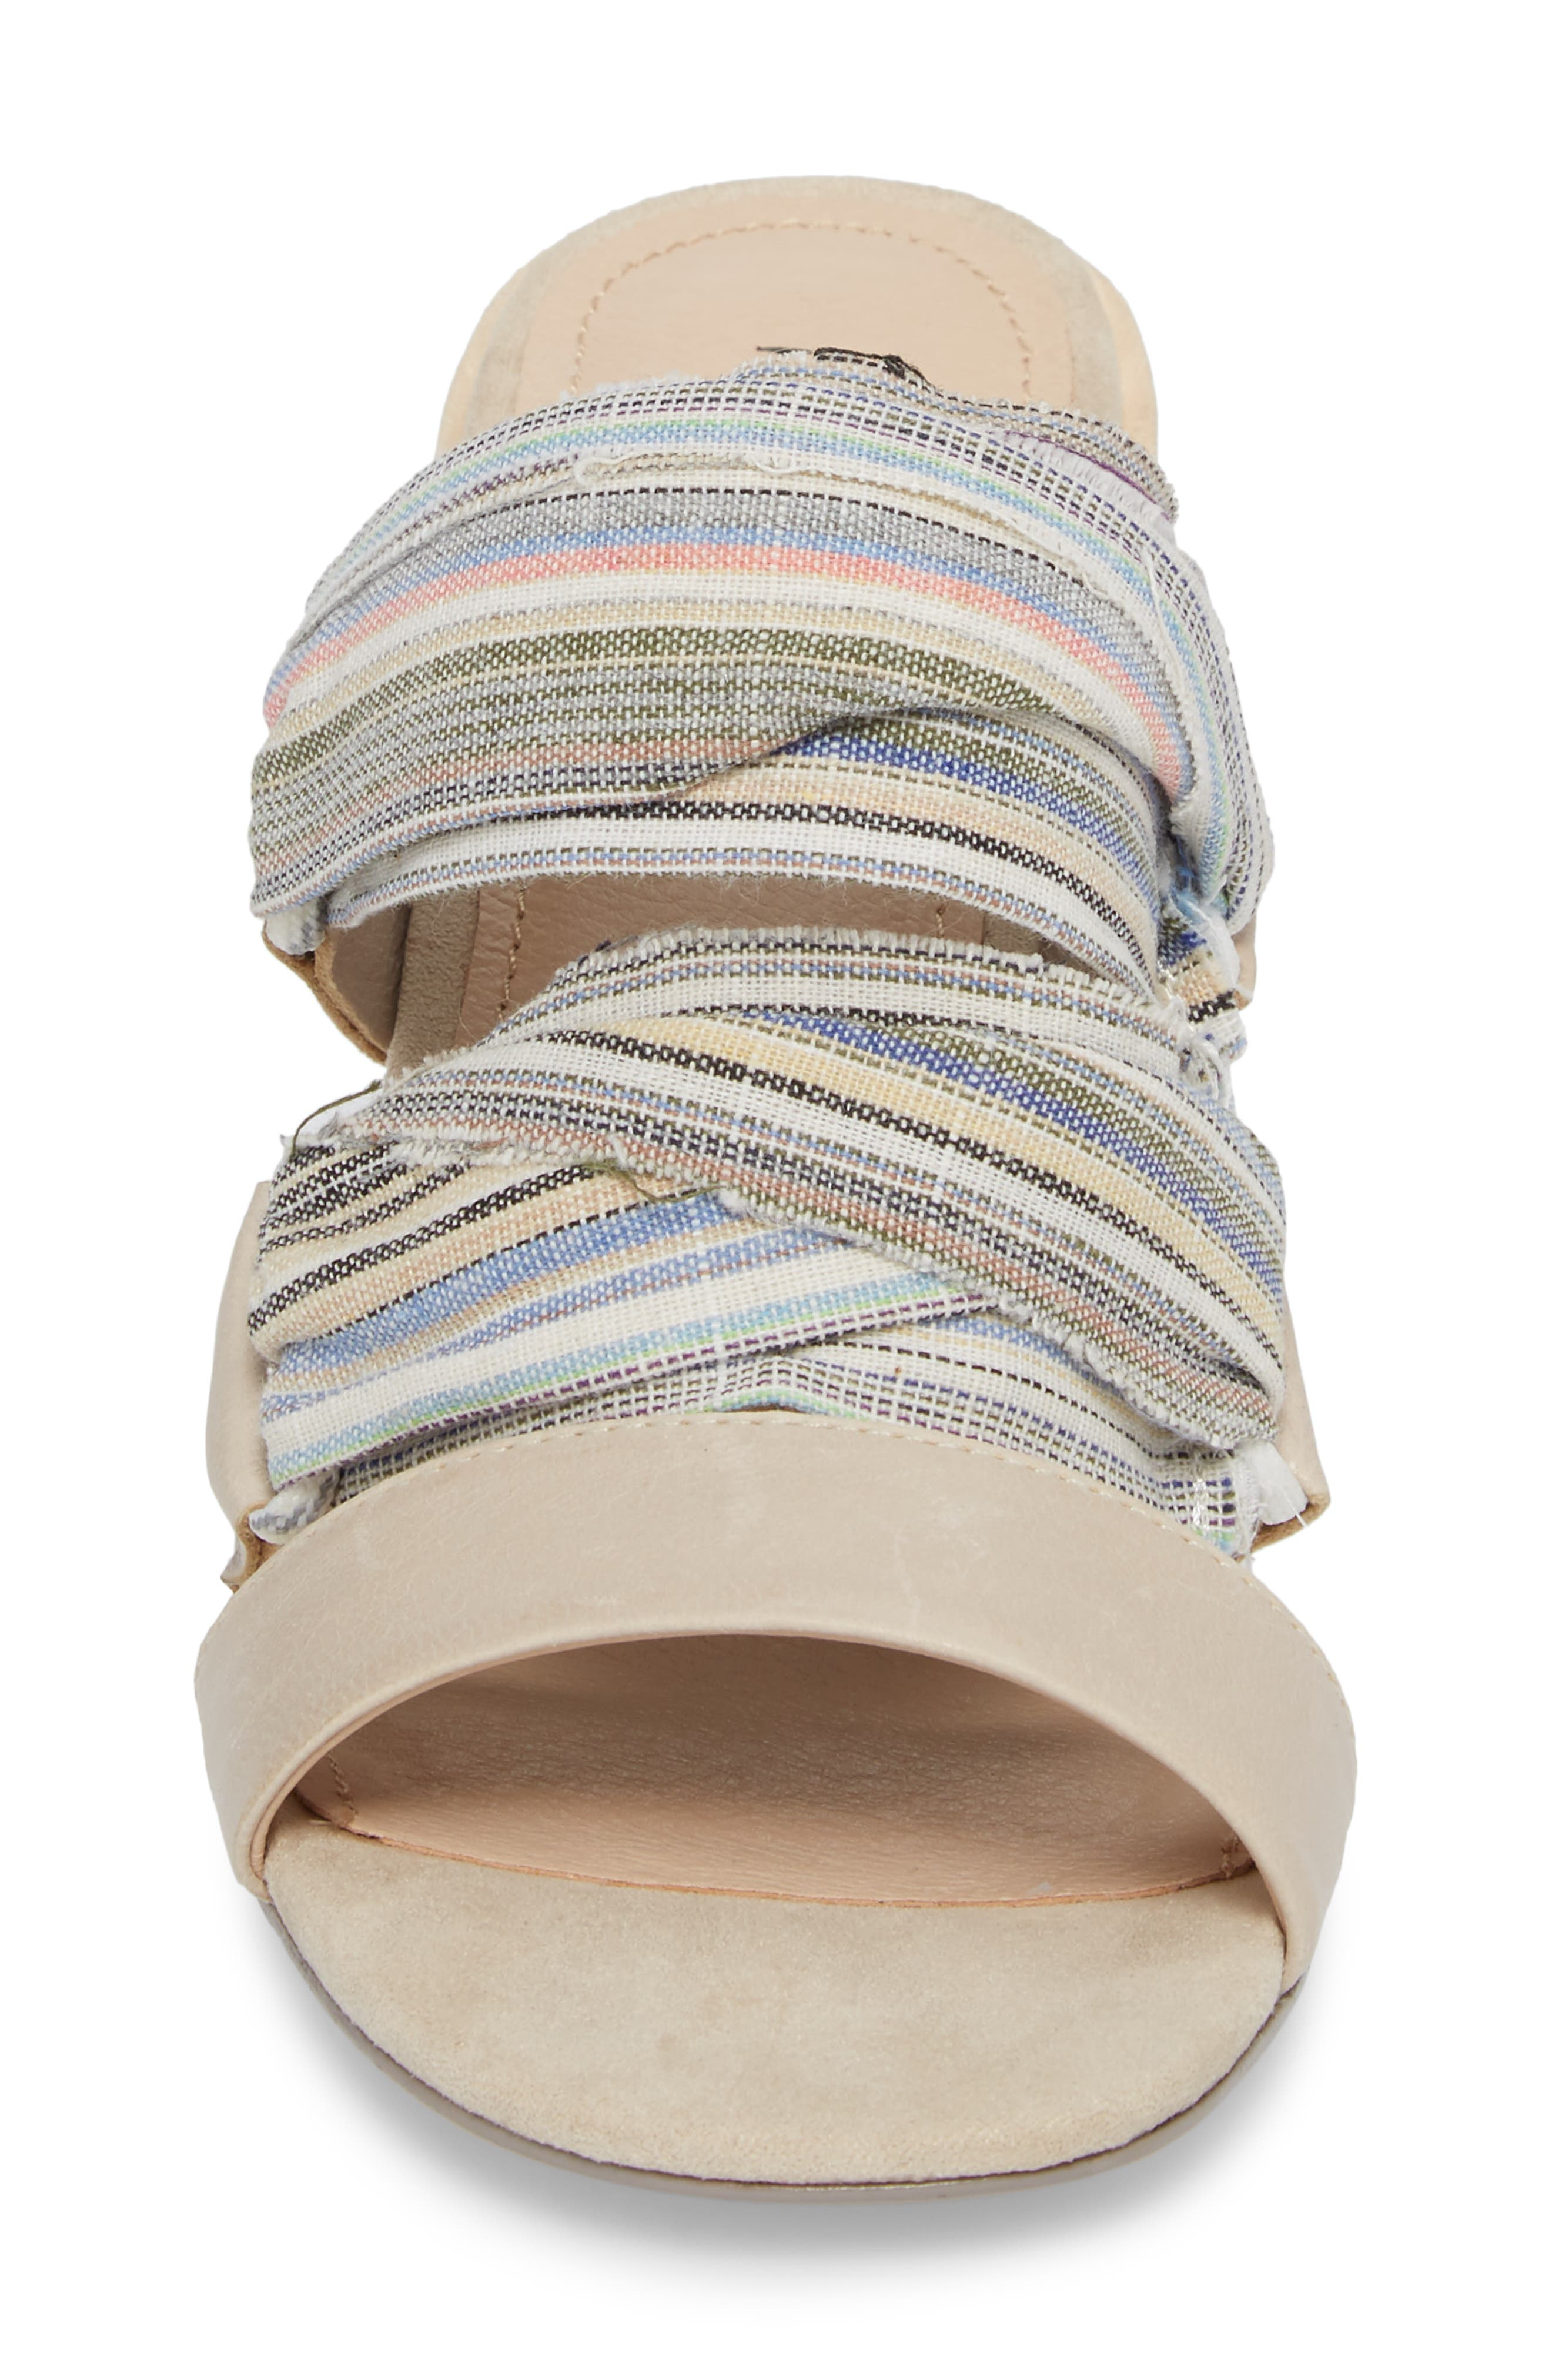 Monaco Block Heel Sandal,                             Alternate thumbnail 4, color,                             Bone/ Multi